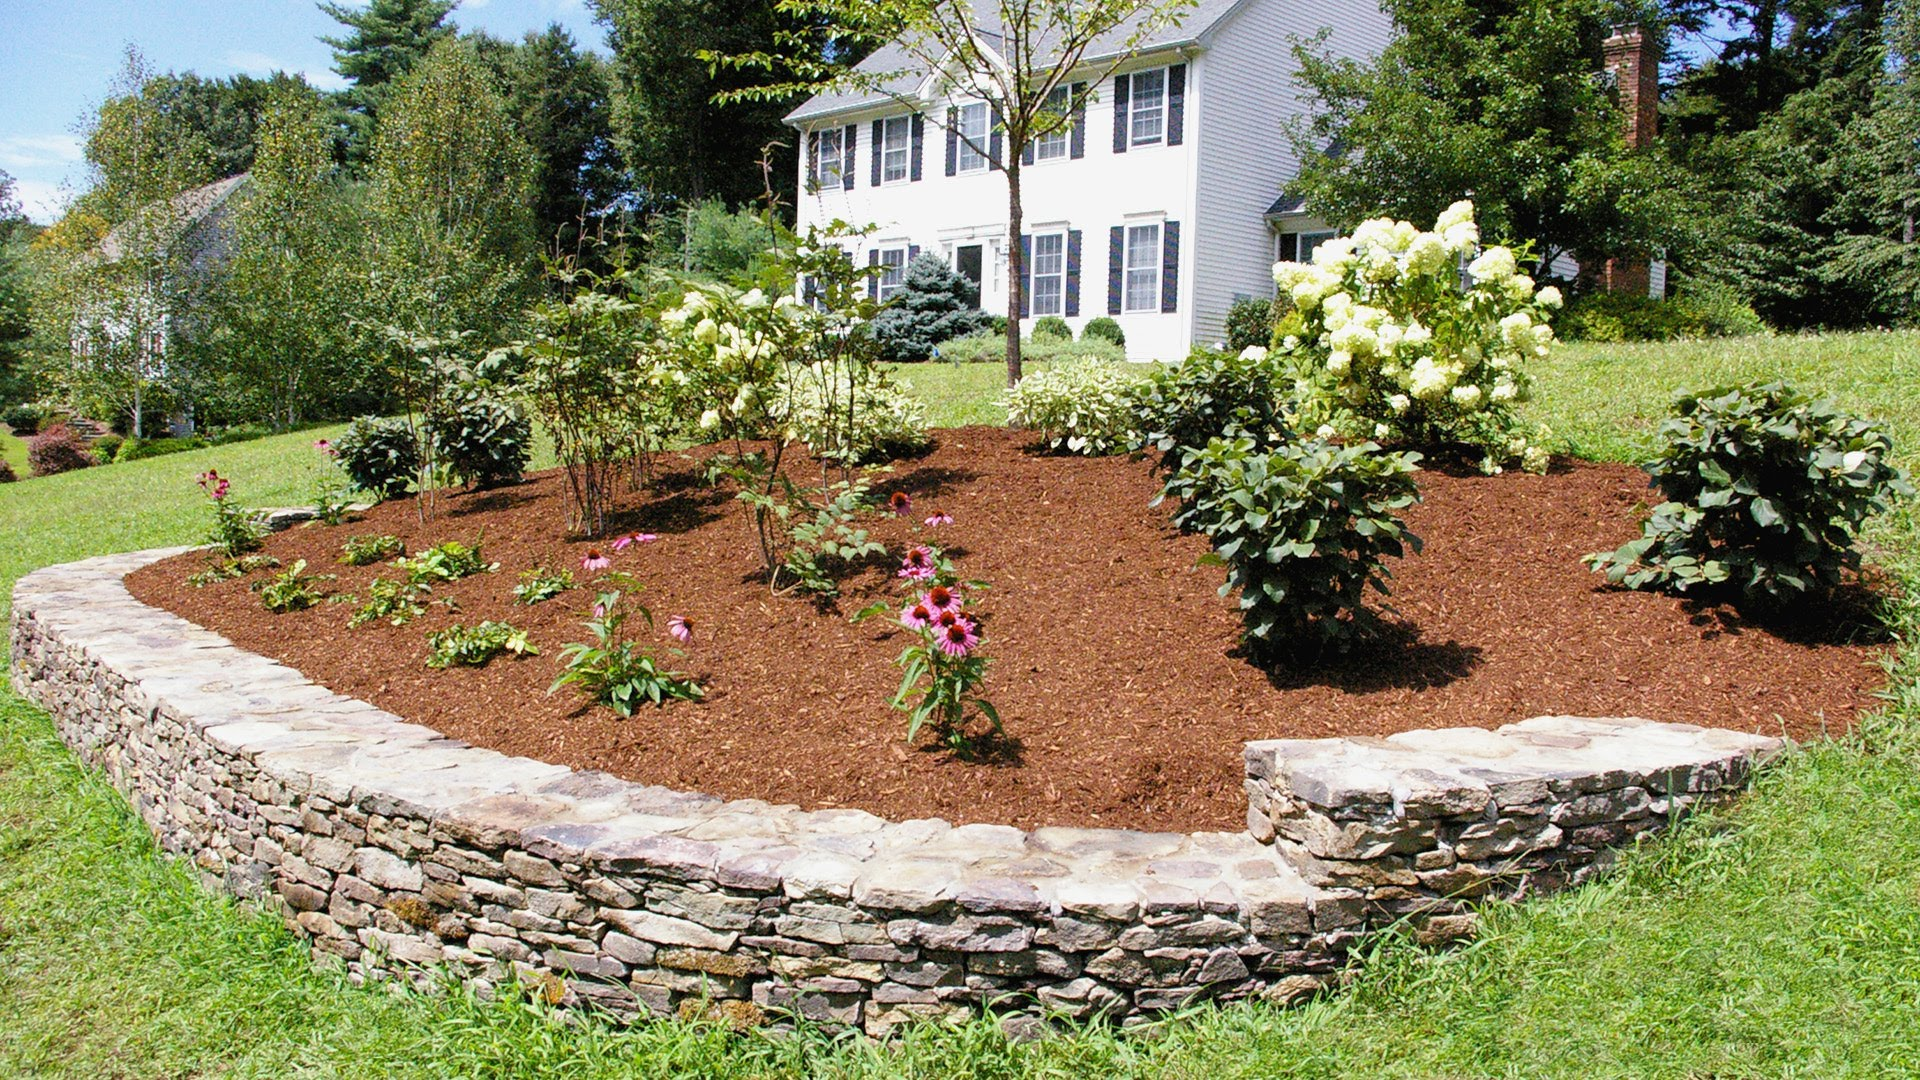 landscaping ideas for front yard landscaping ideas for a front yard: a berm for curb appeal - MCVZNOV